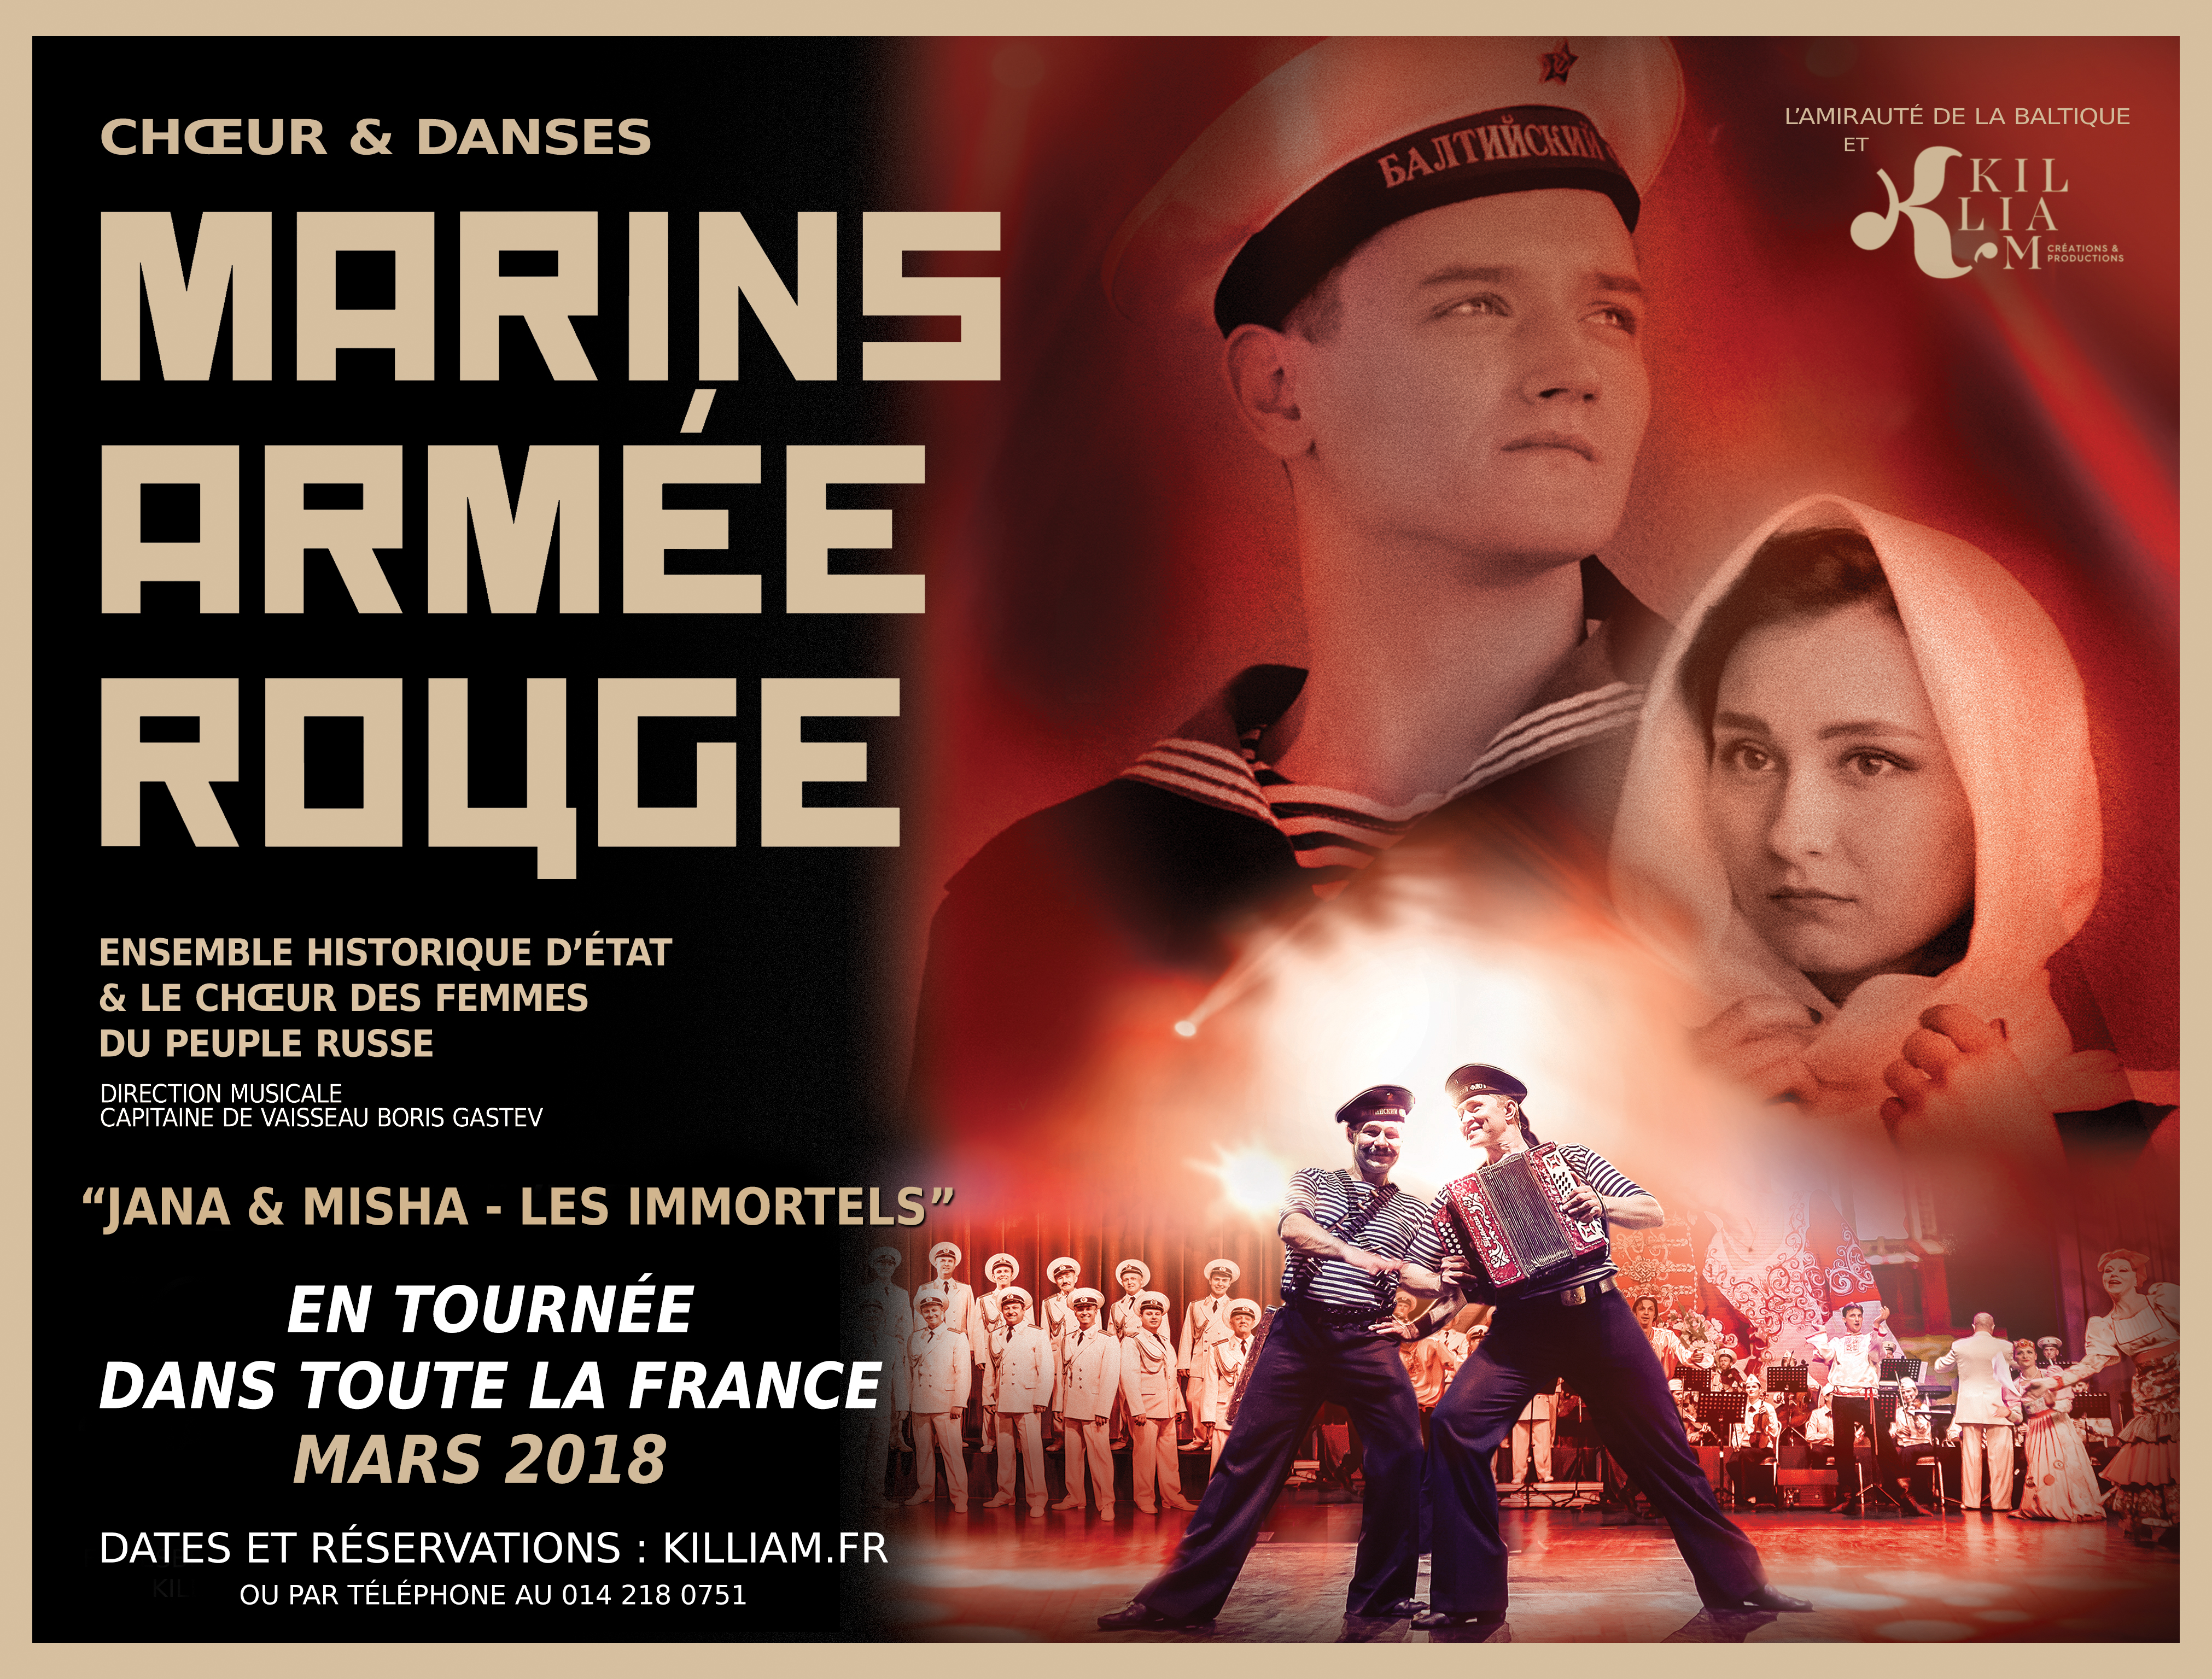 MARINS ARMEE ROUGE AFFICHE TOURNEE mars